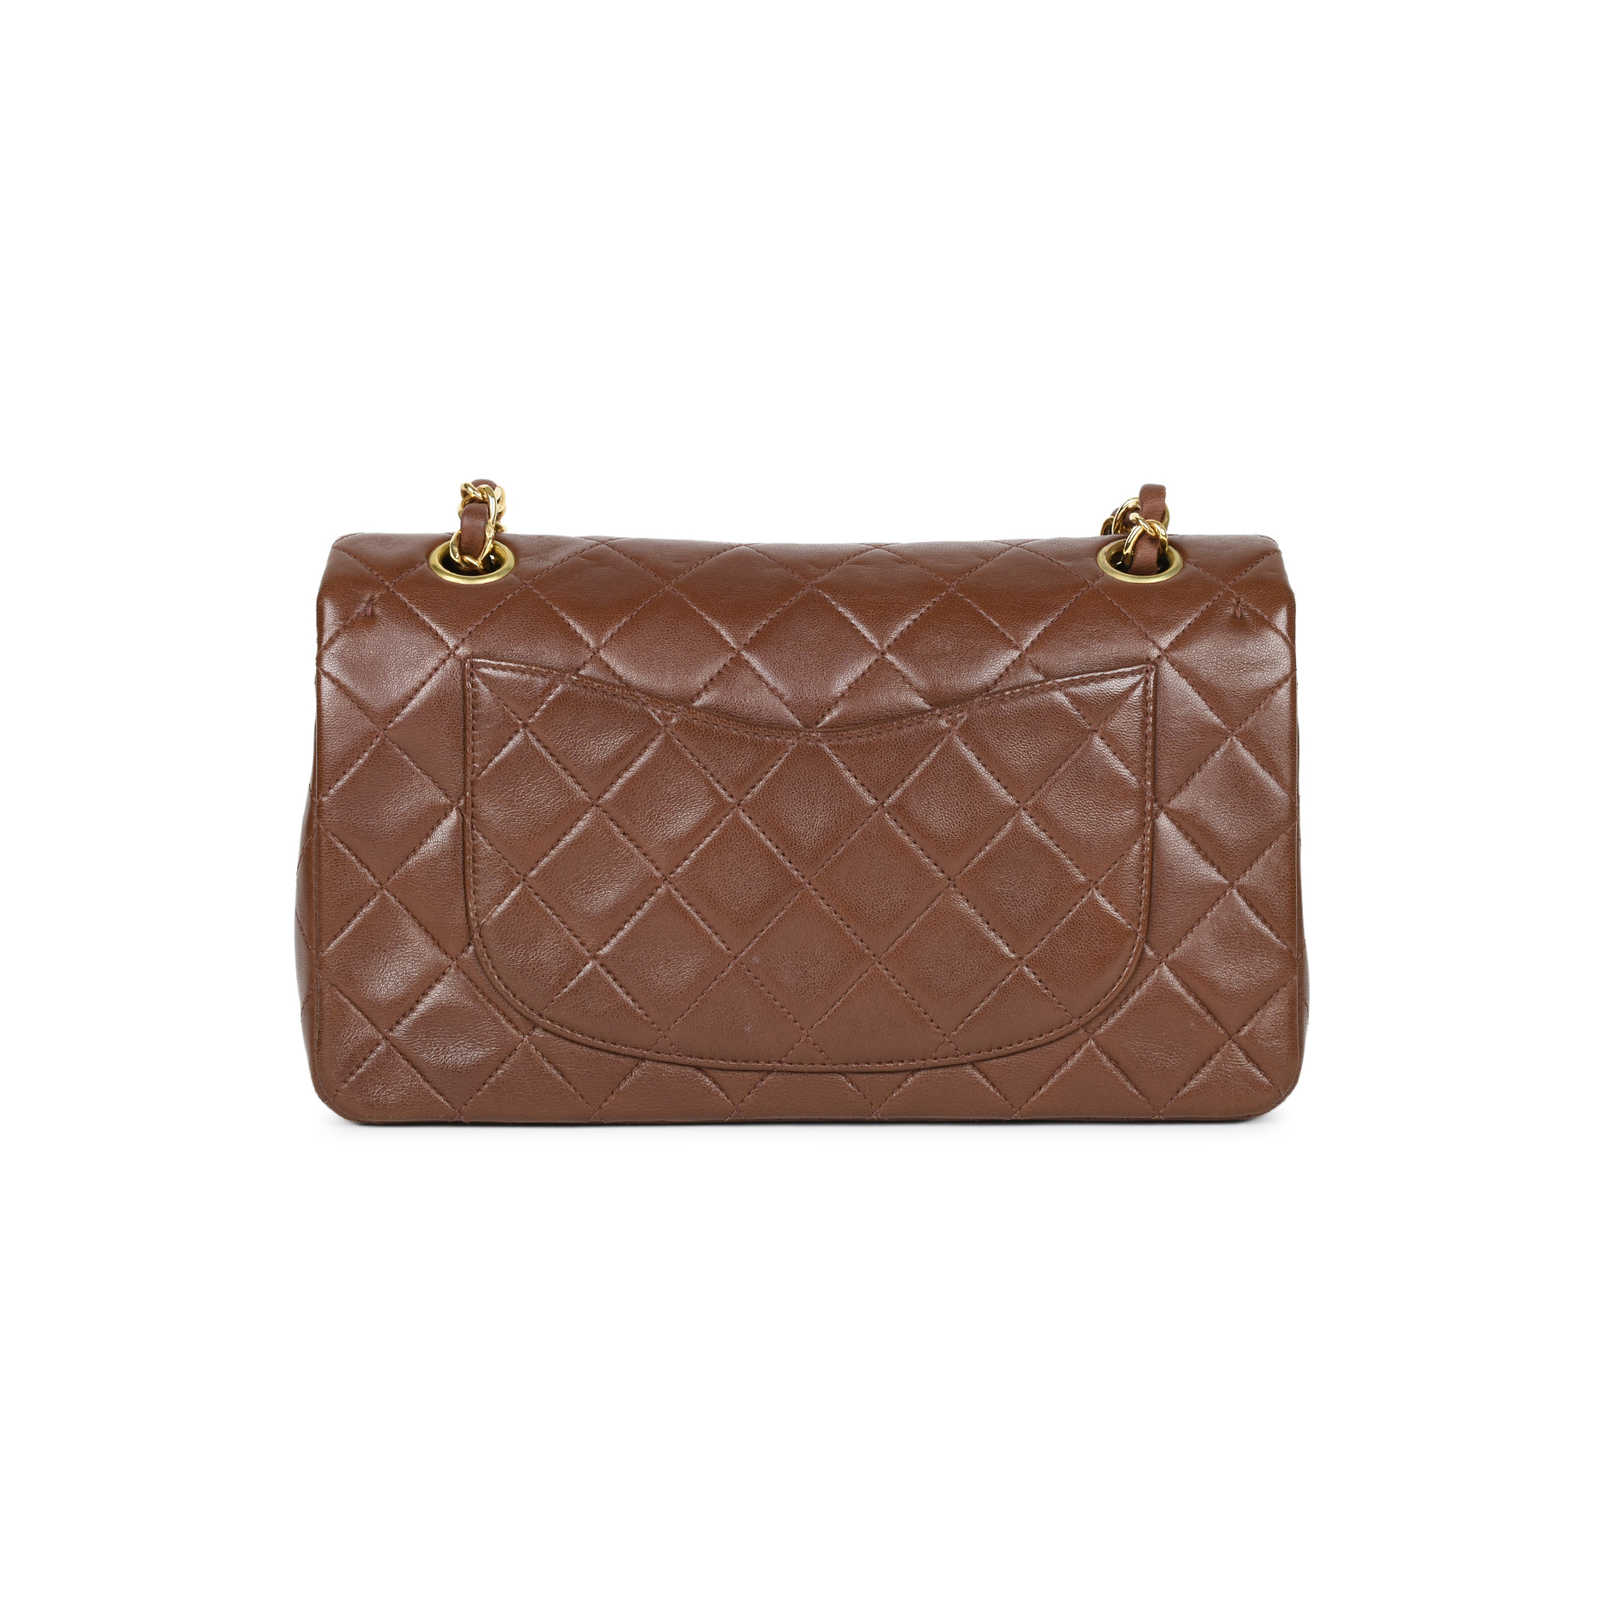 3c8b6e0727 ... Authentic Second Hand Chanel Brown Small Classic Flap Bag  (PSS-051-00378) ...